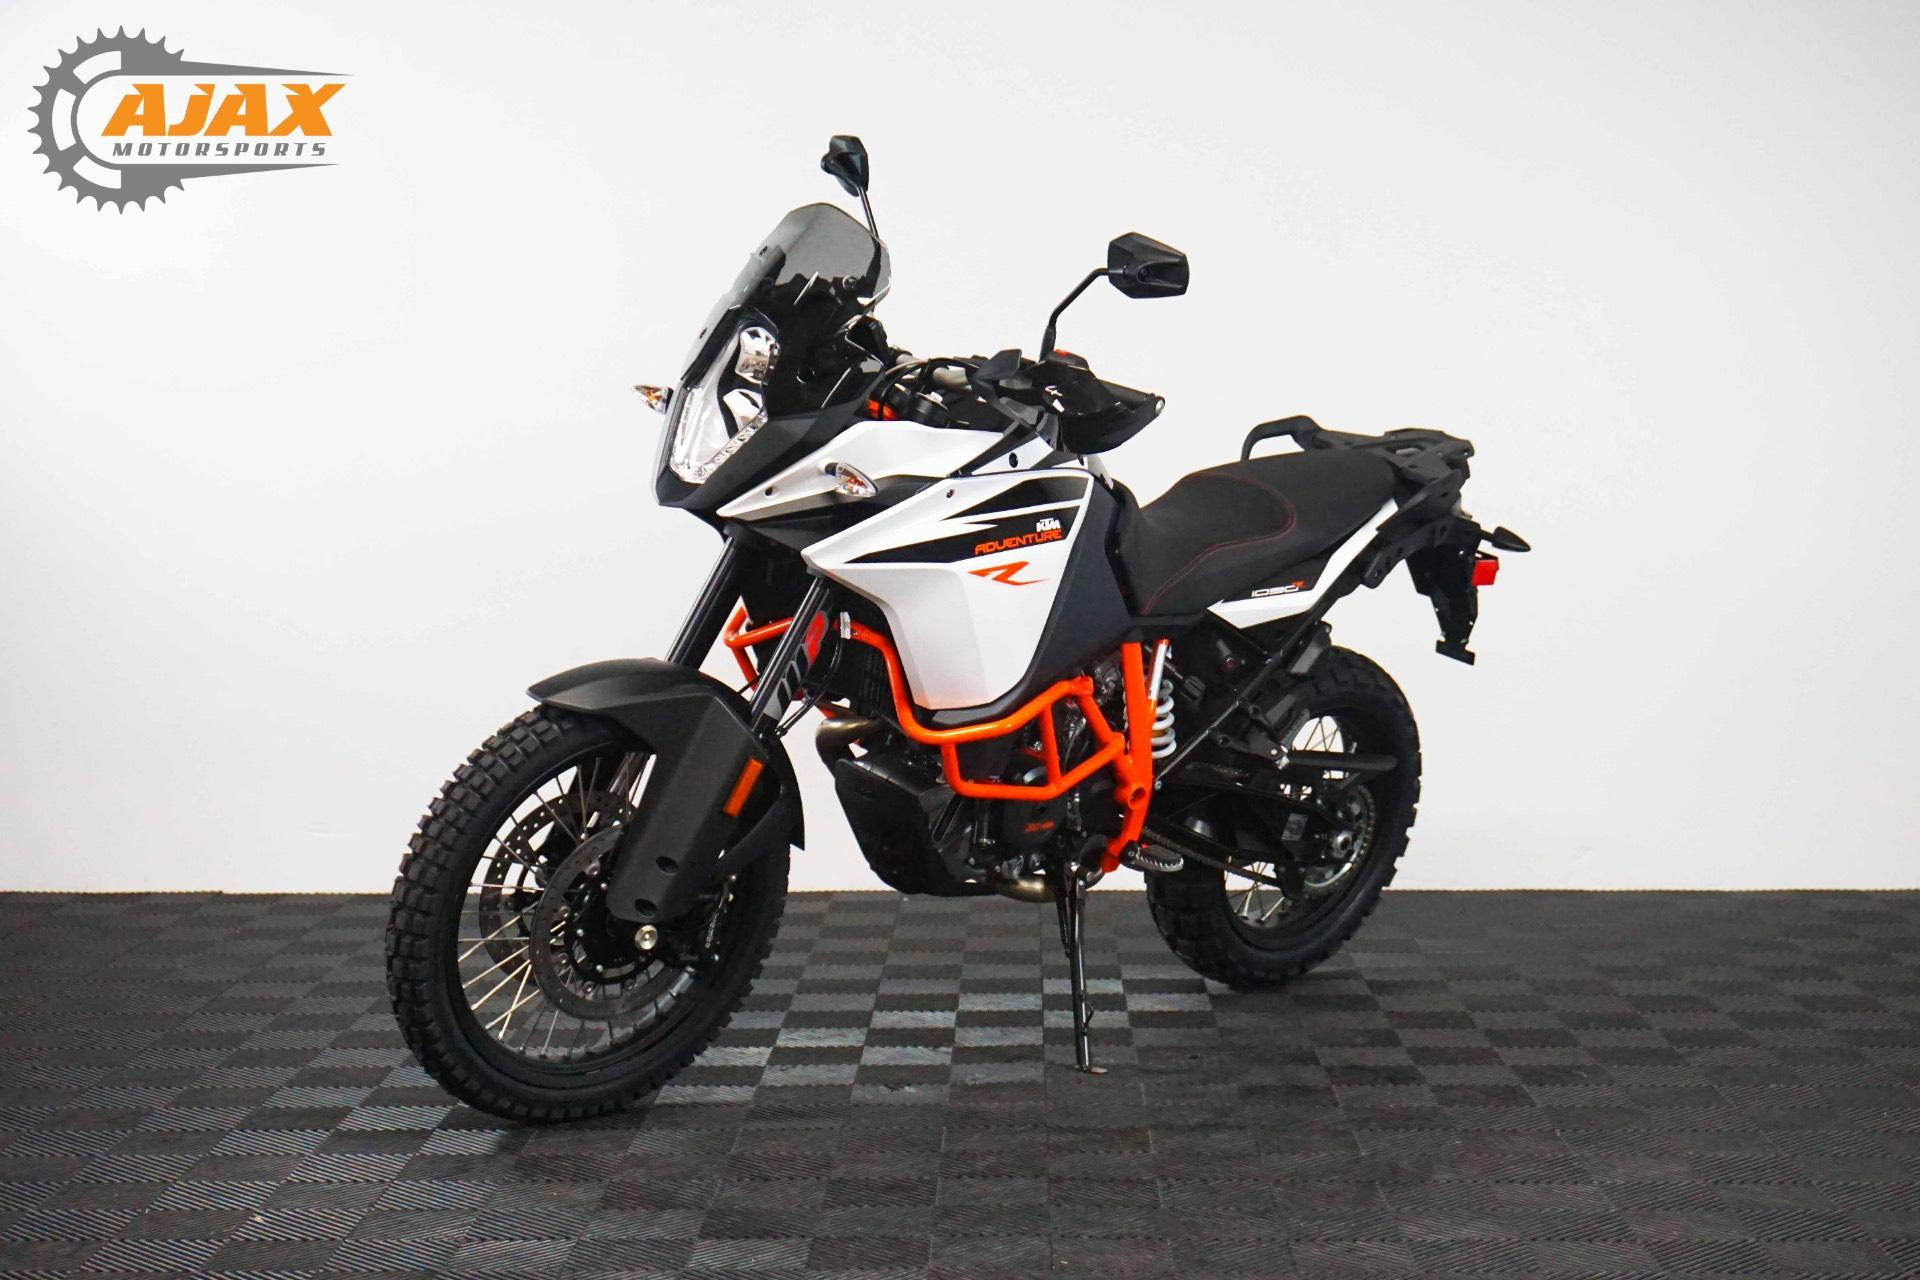 2013 Ktm 250 Exc Wiring Diagram Download Diagrams Xcf 350 Images Gallery